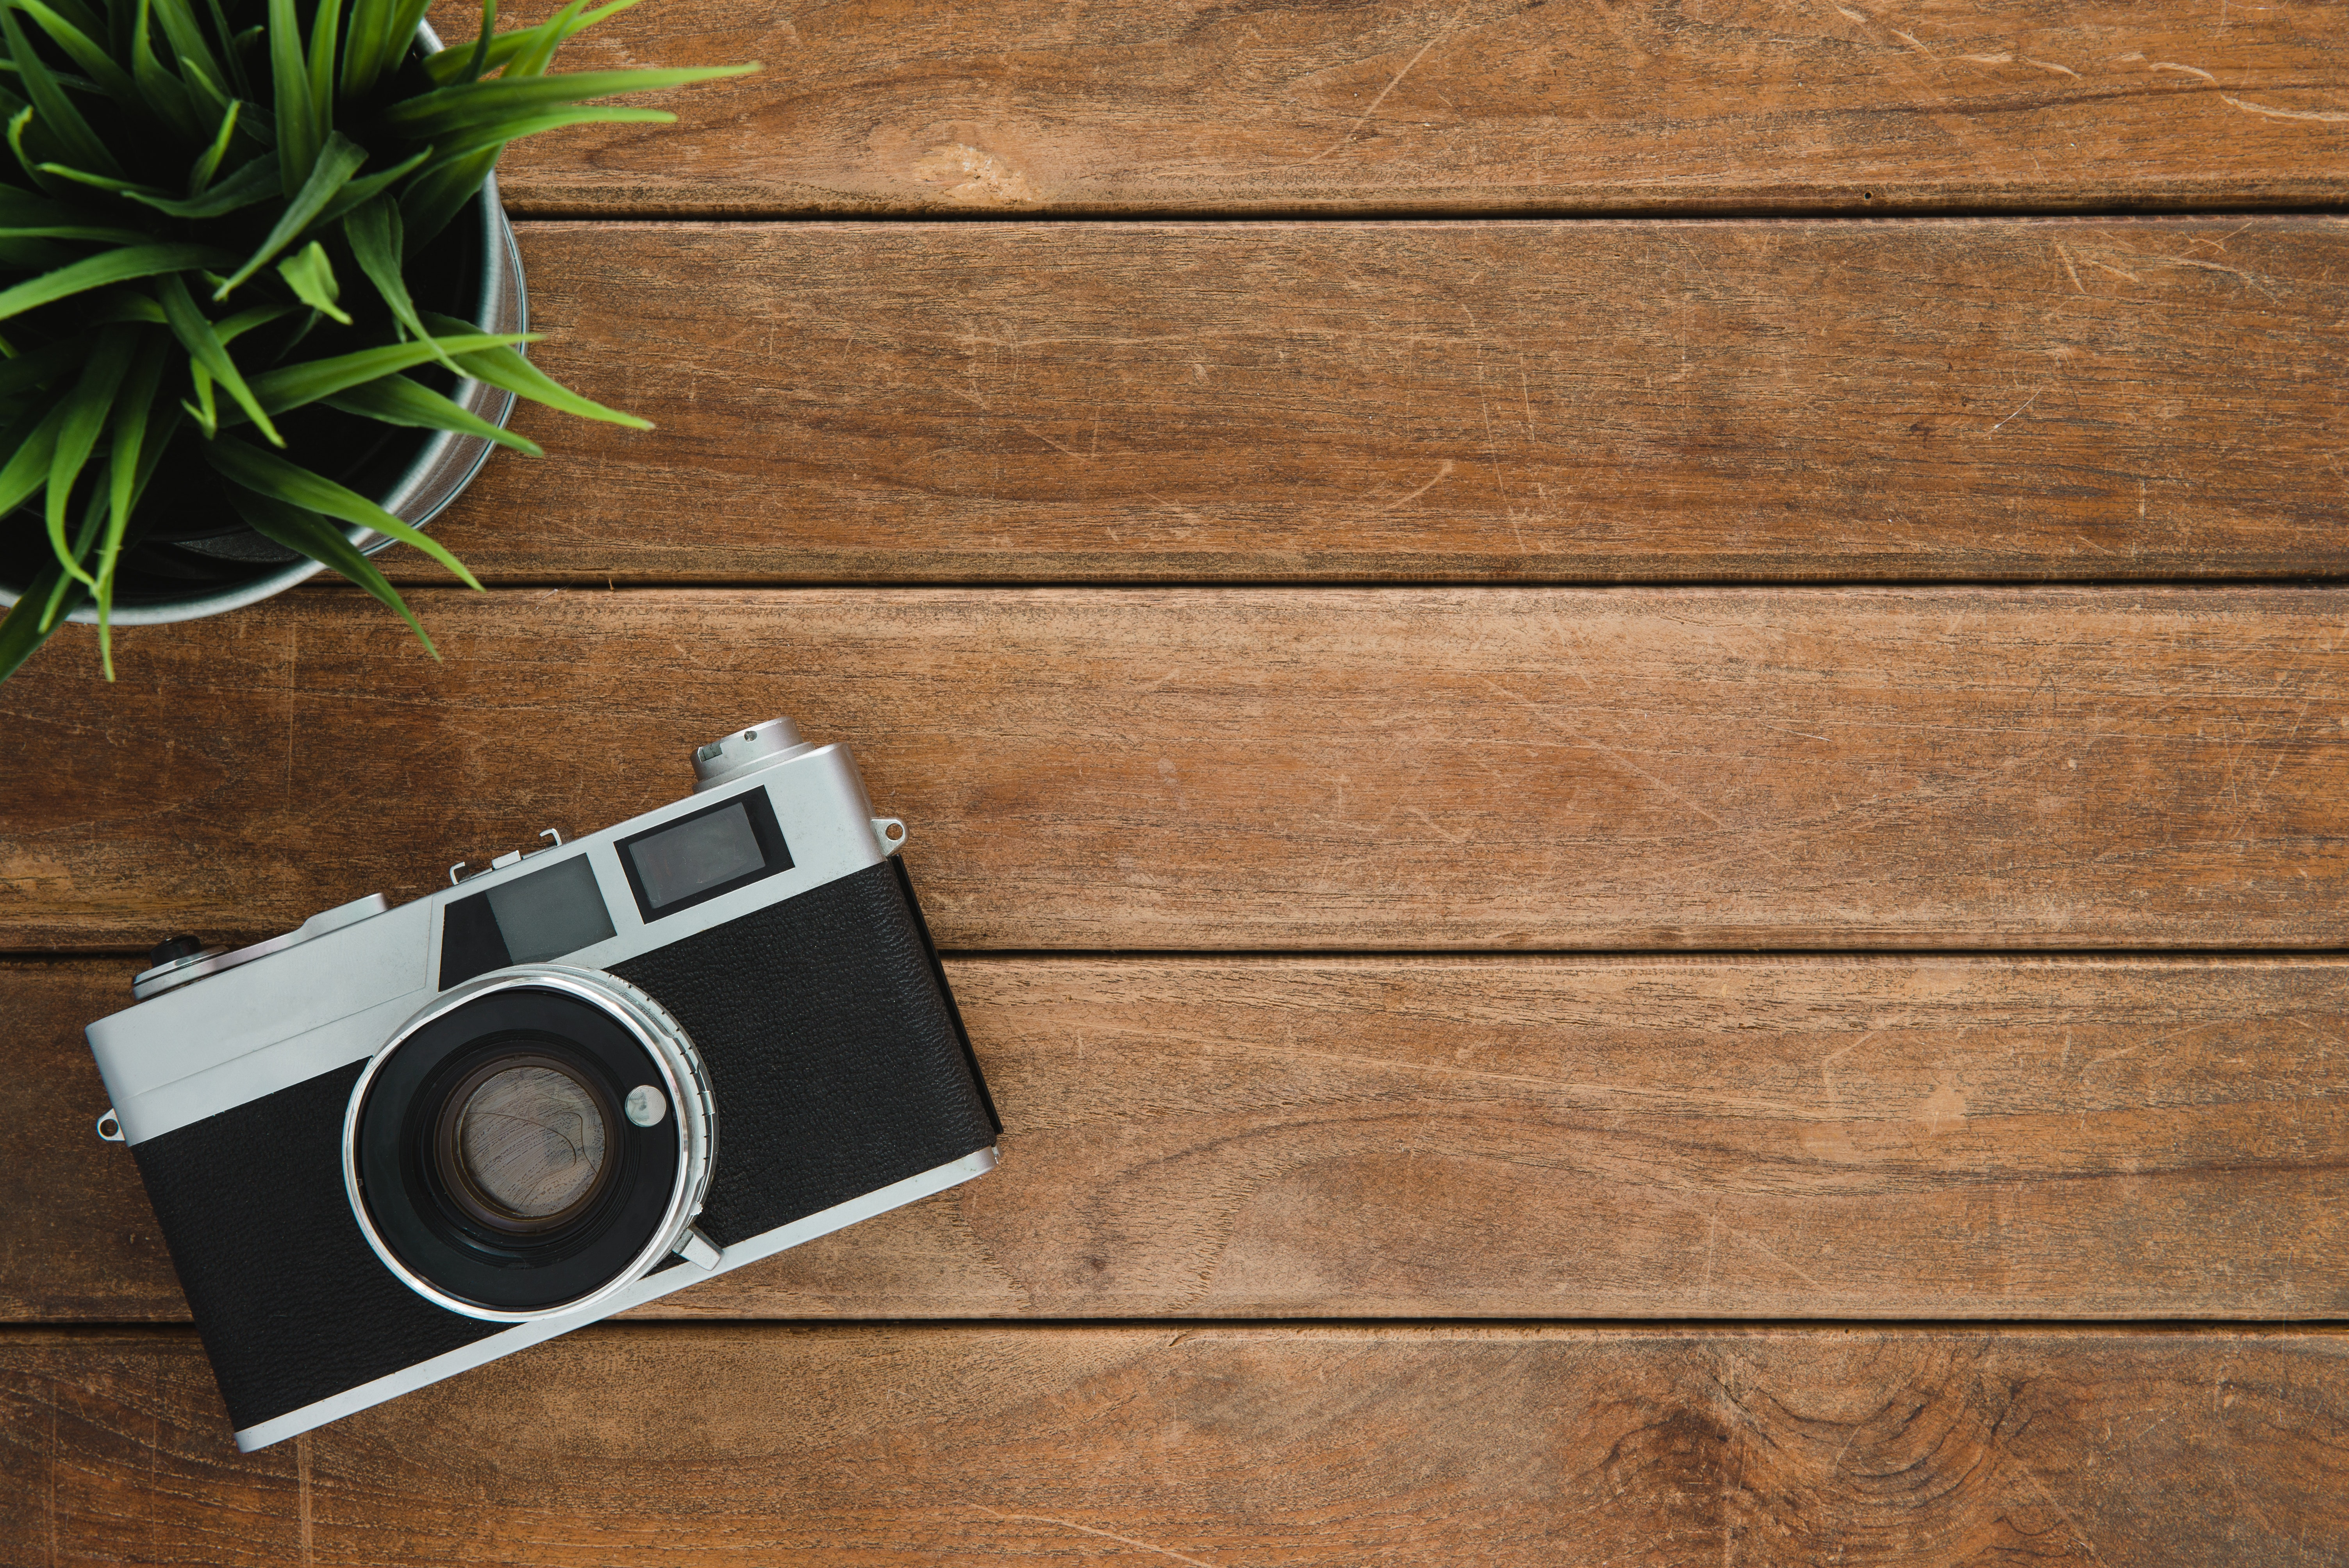 Black and silver film camera on brown wooden surface photo